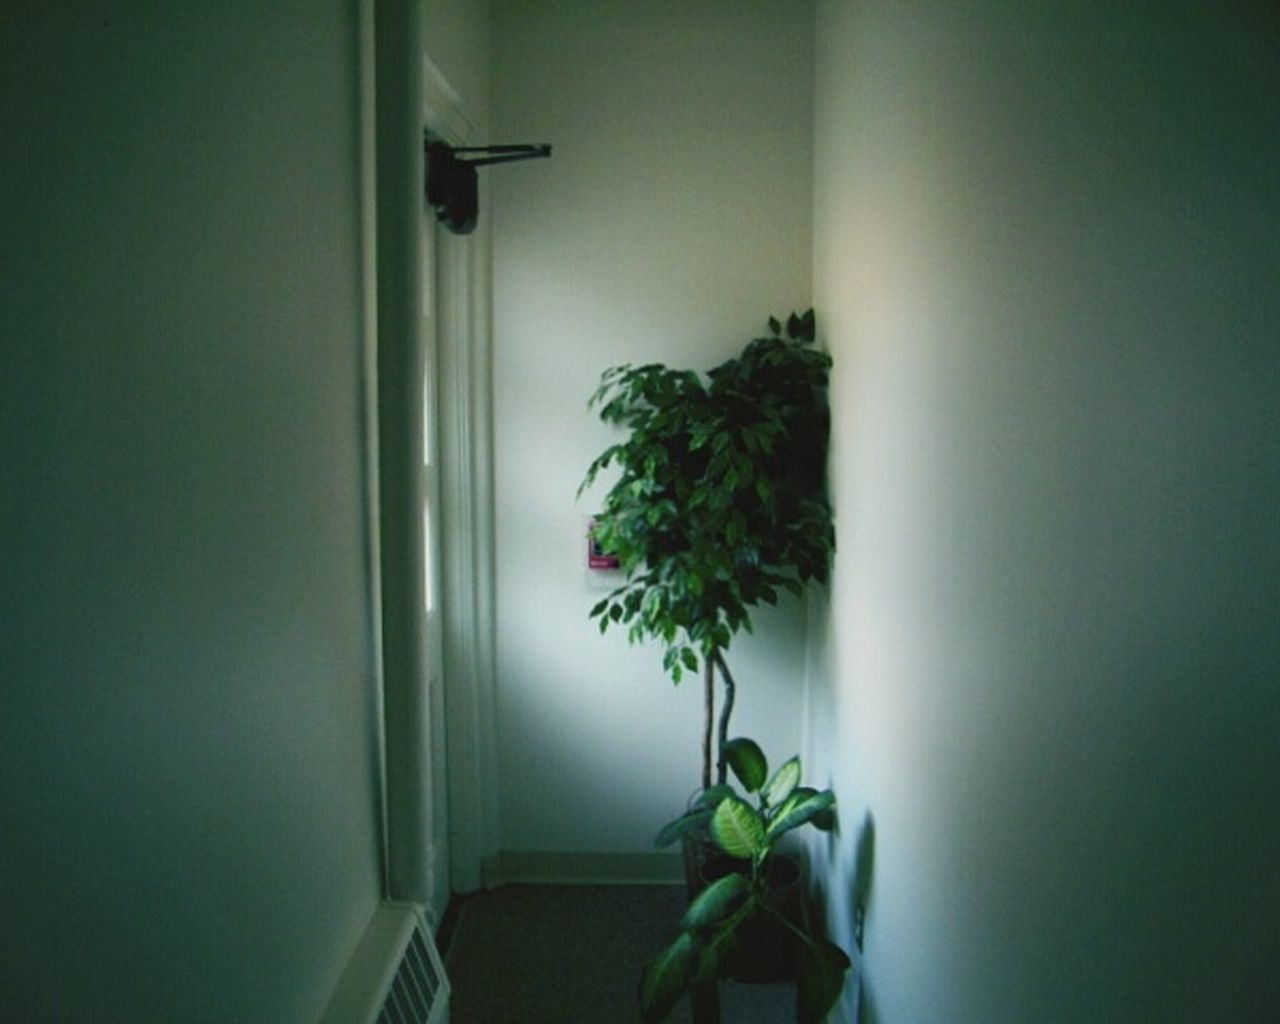 Corridor Hallway Narrow Narrowpath Plants Plant Light Light Beams Rays Of Light Light Rays